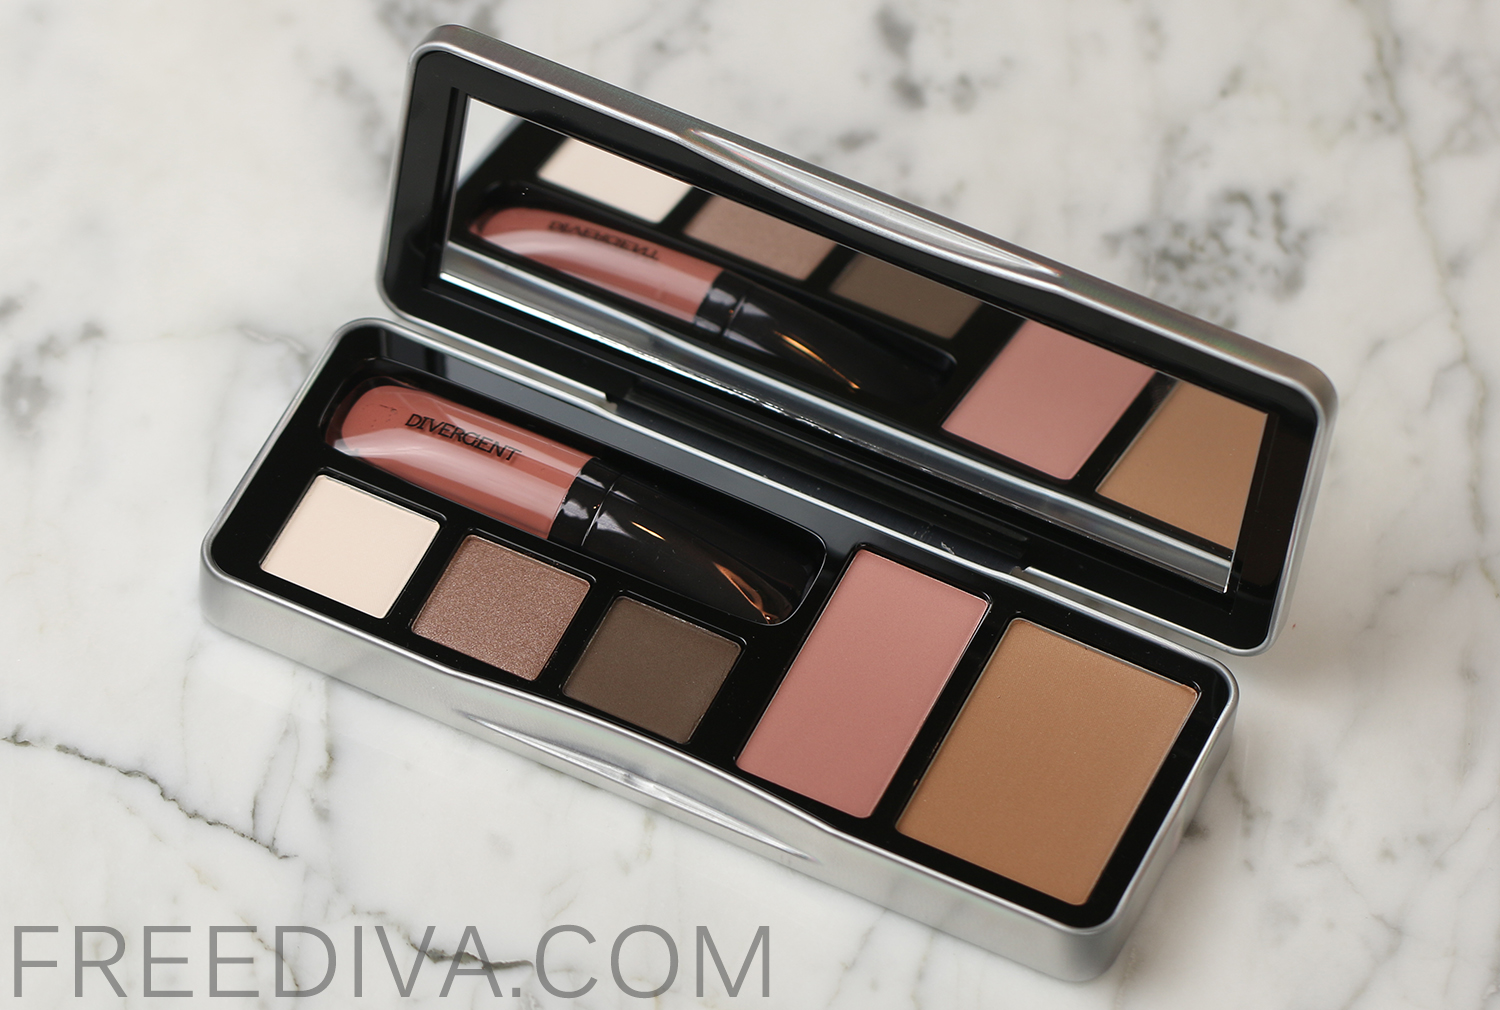 Sephora Divergent Limited Edition Collector's Palette